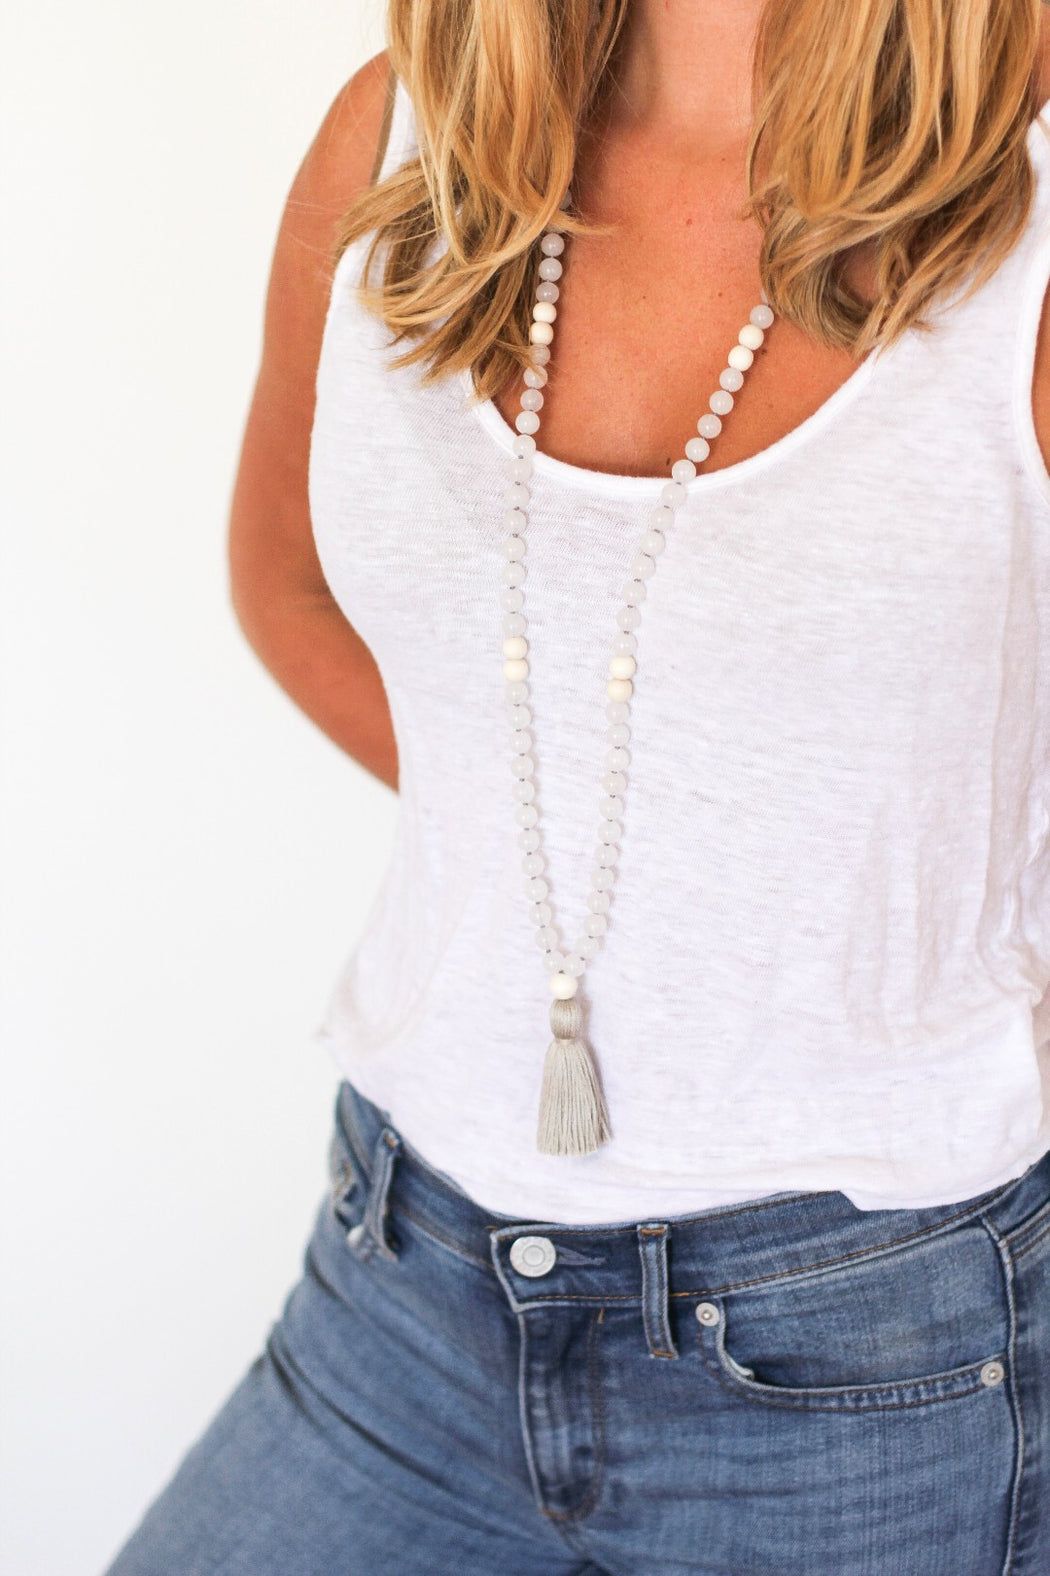 Quartz mala bead necklace